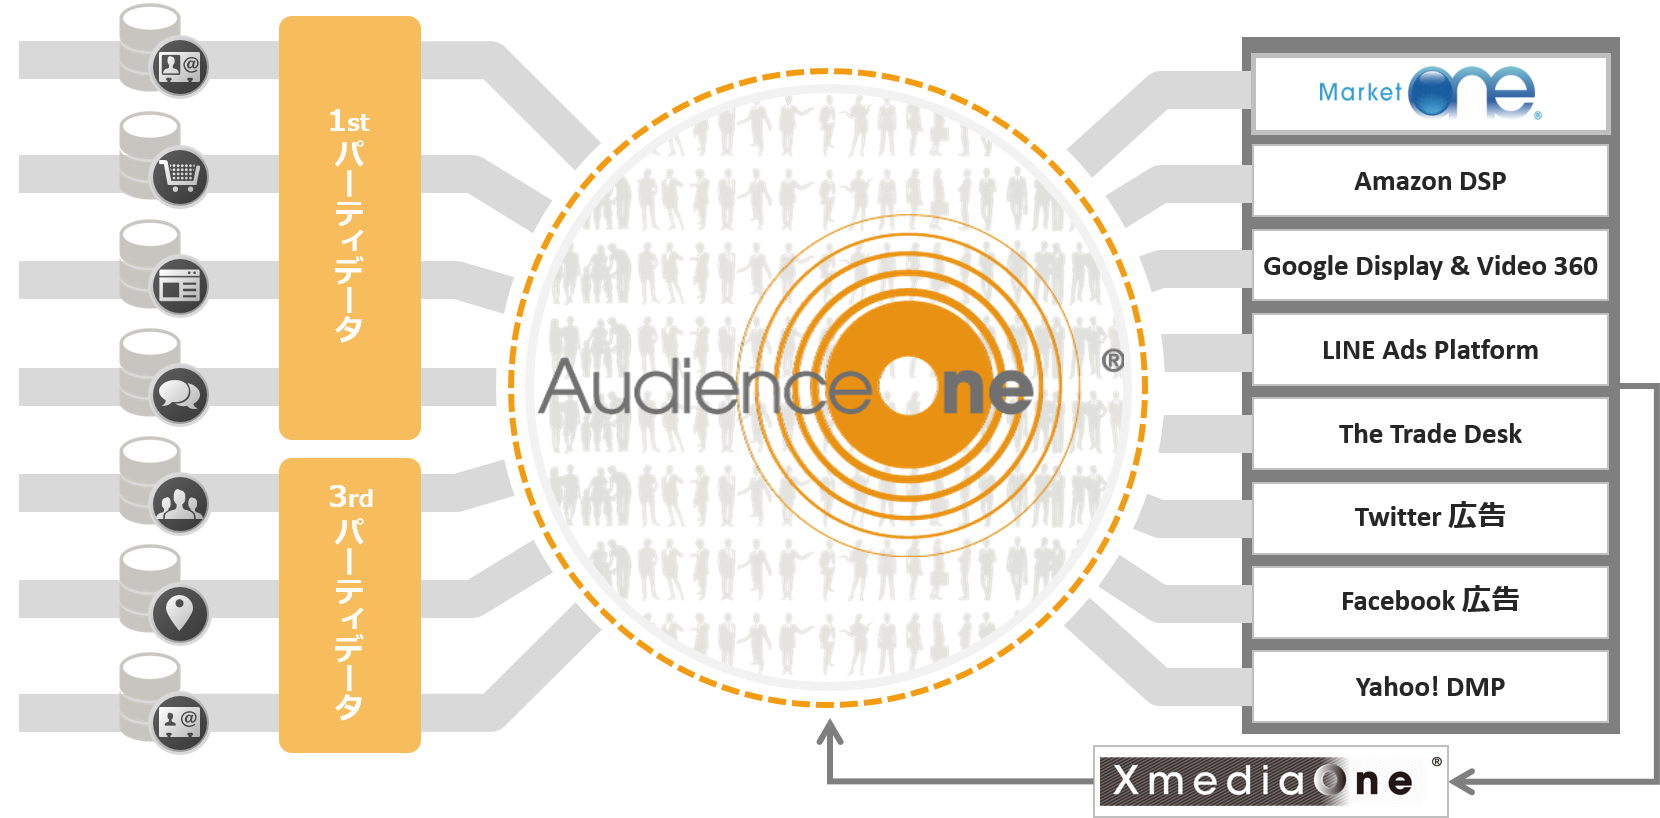 「AudienceOne Connect®」によるセグメント配信